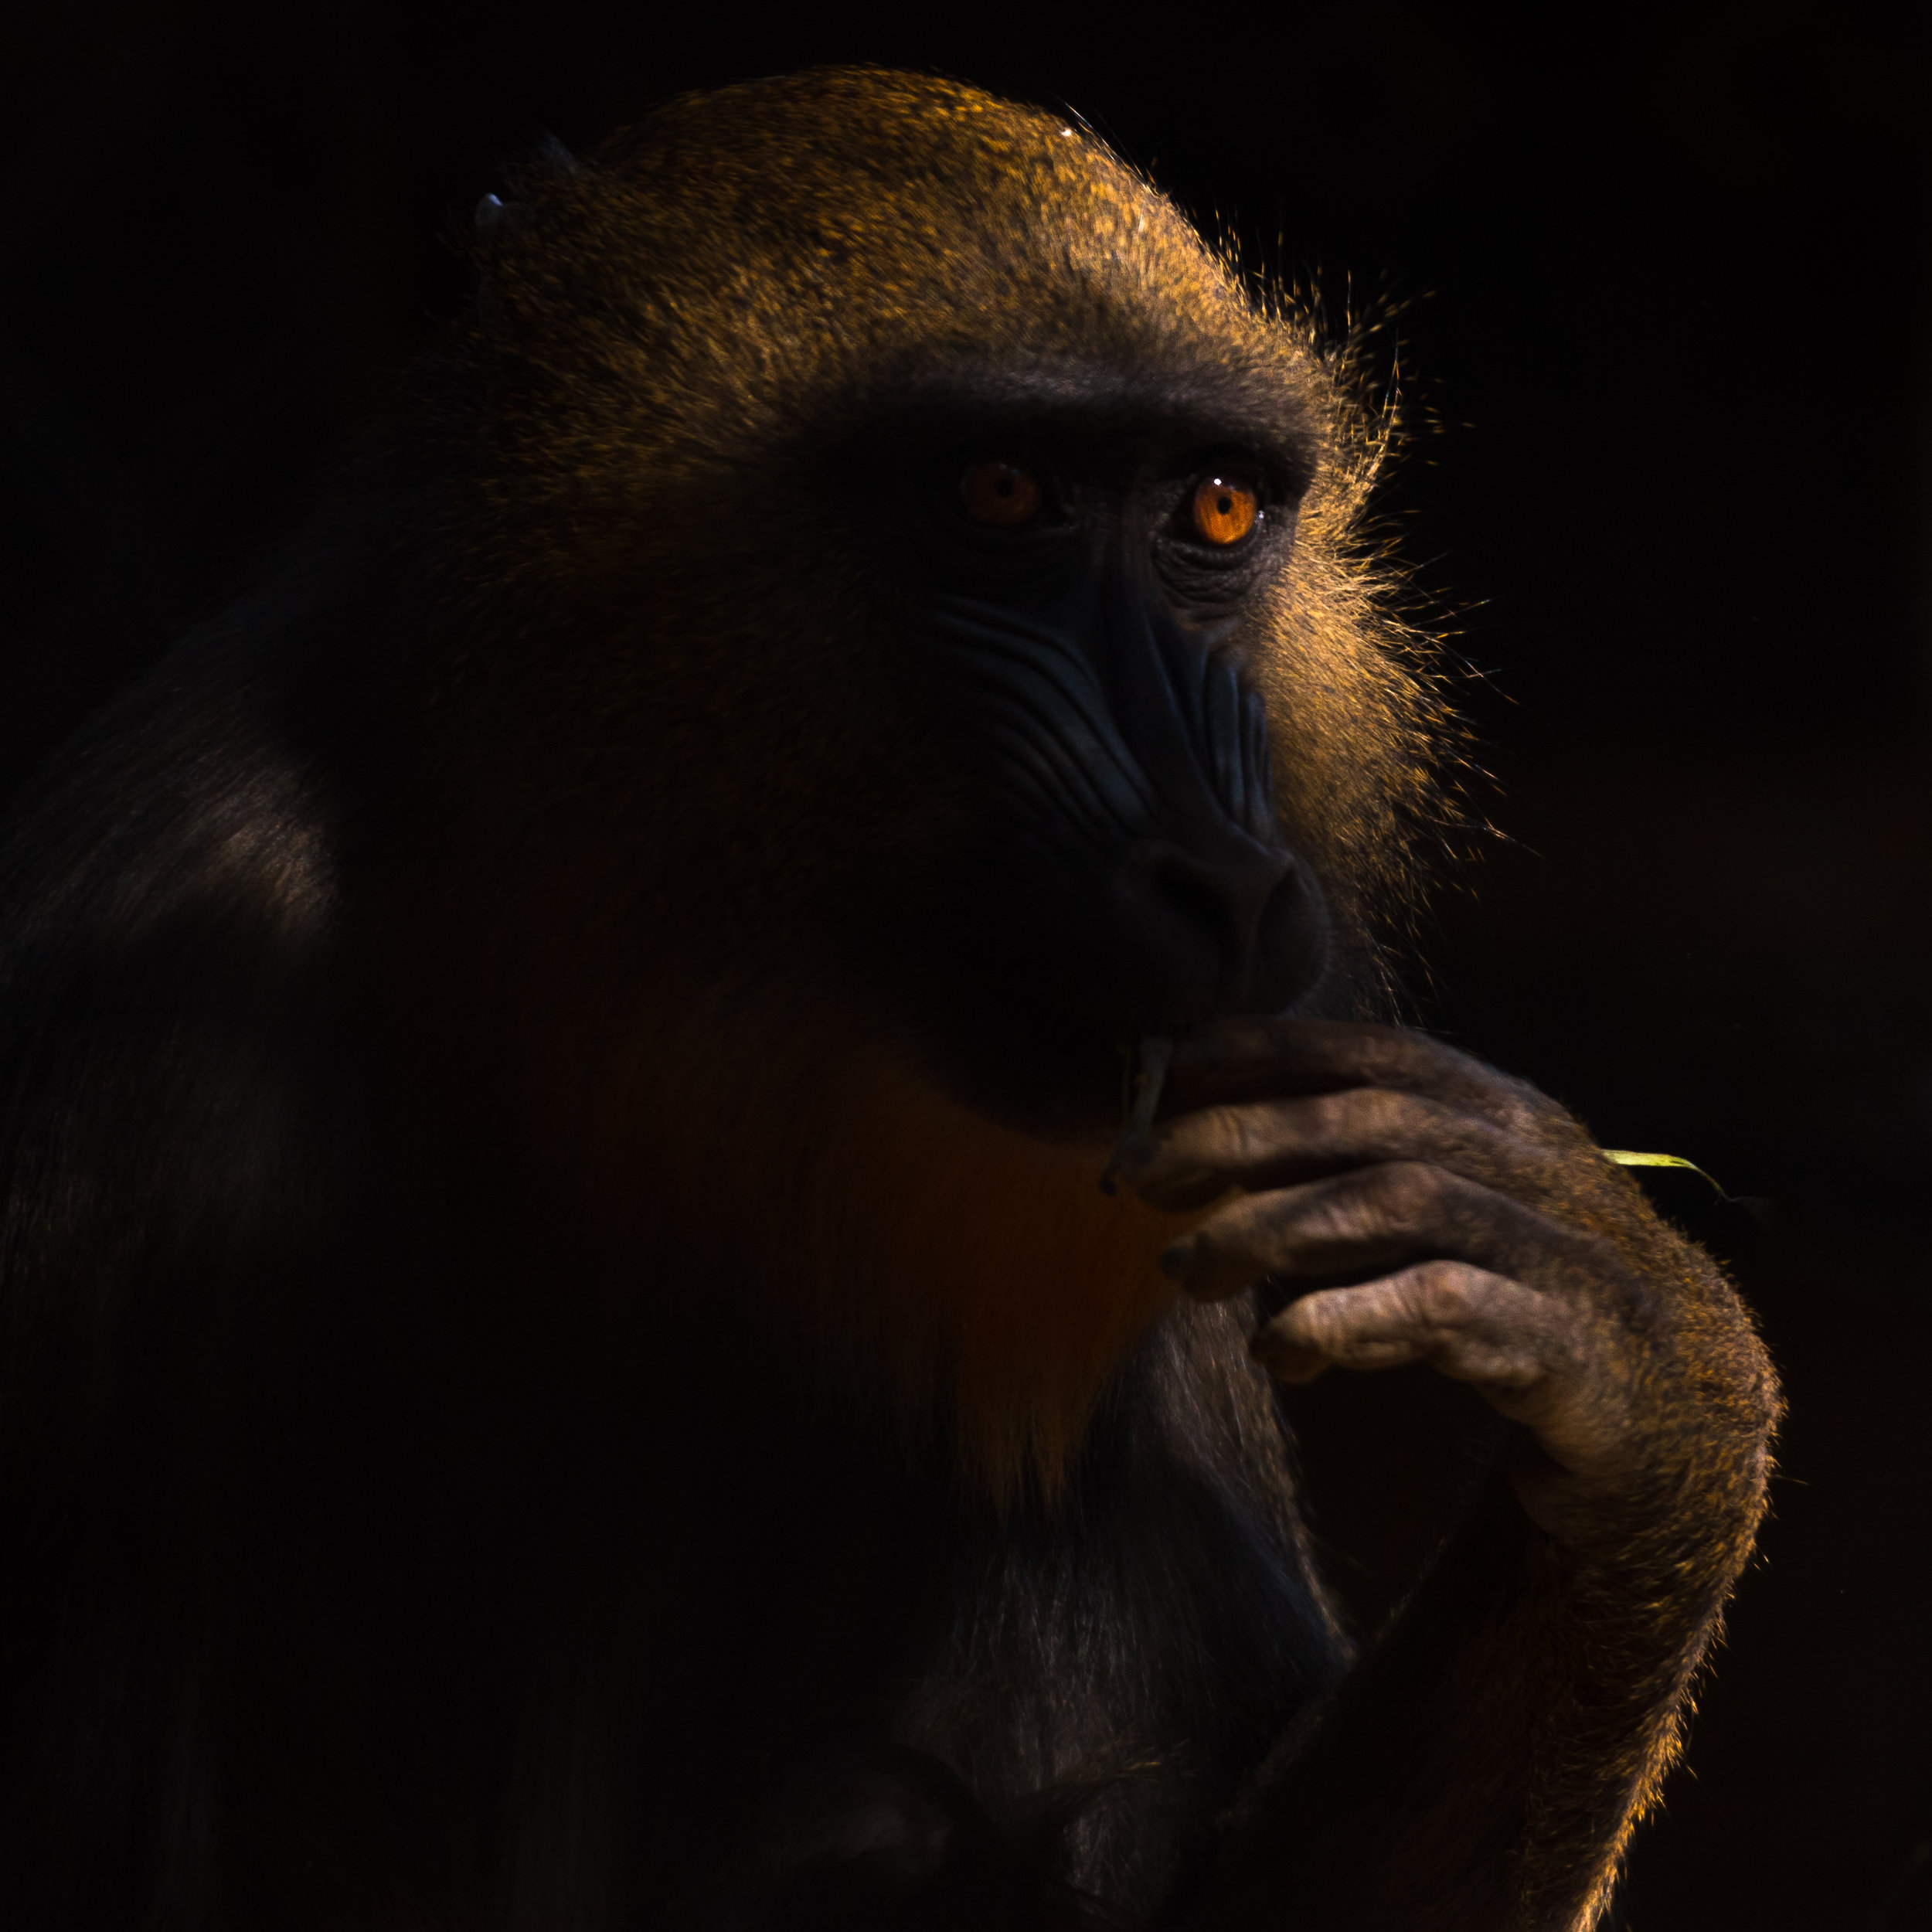 mandrill_sunlight (1 of 1).jpg